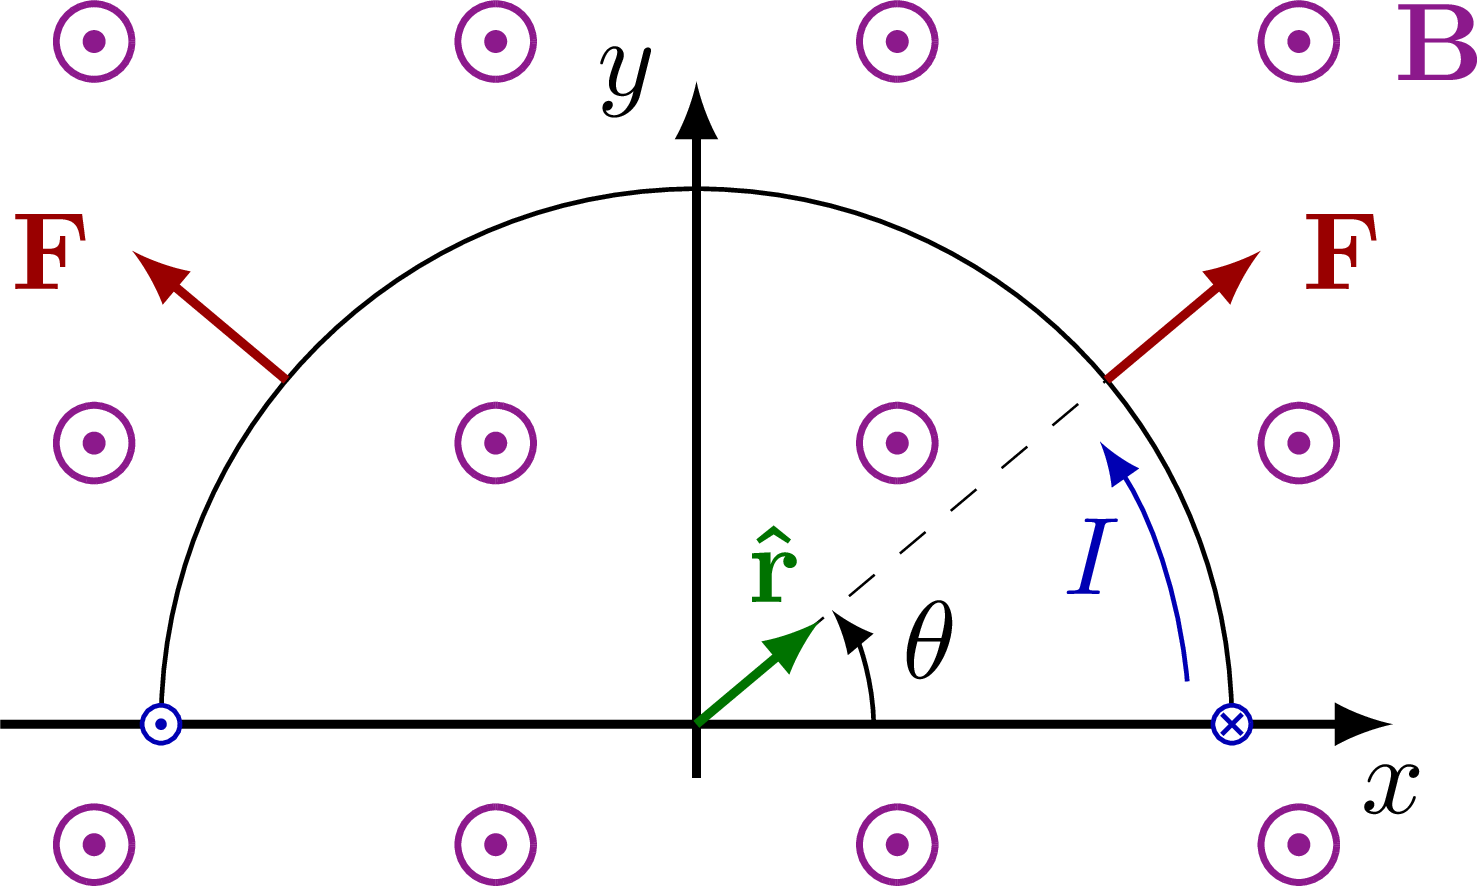 magnetic_force_current-003.png